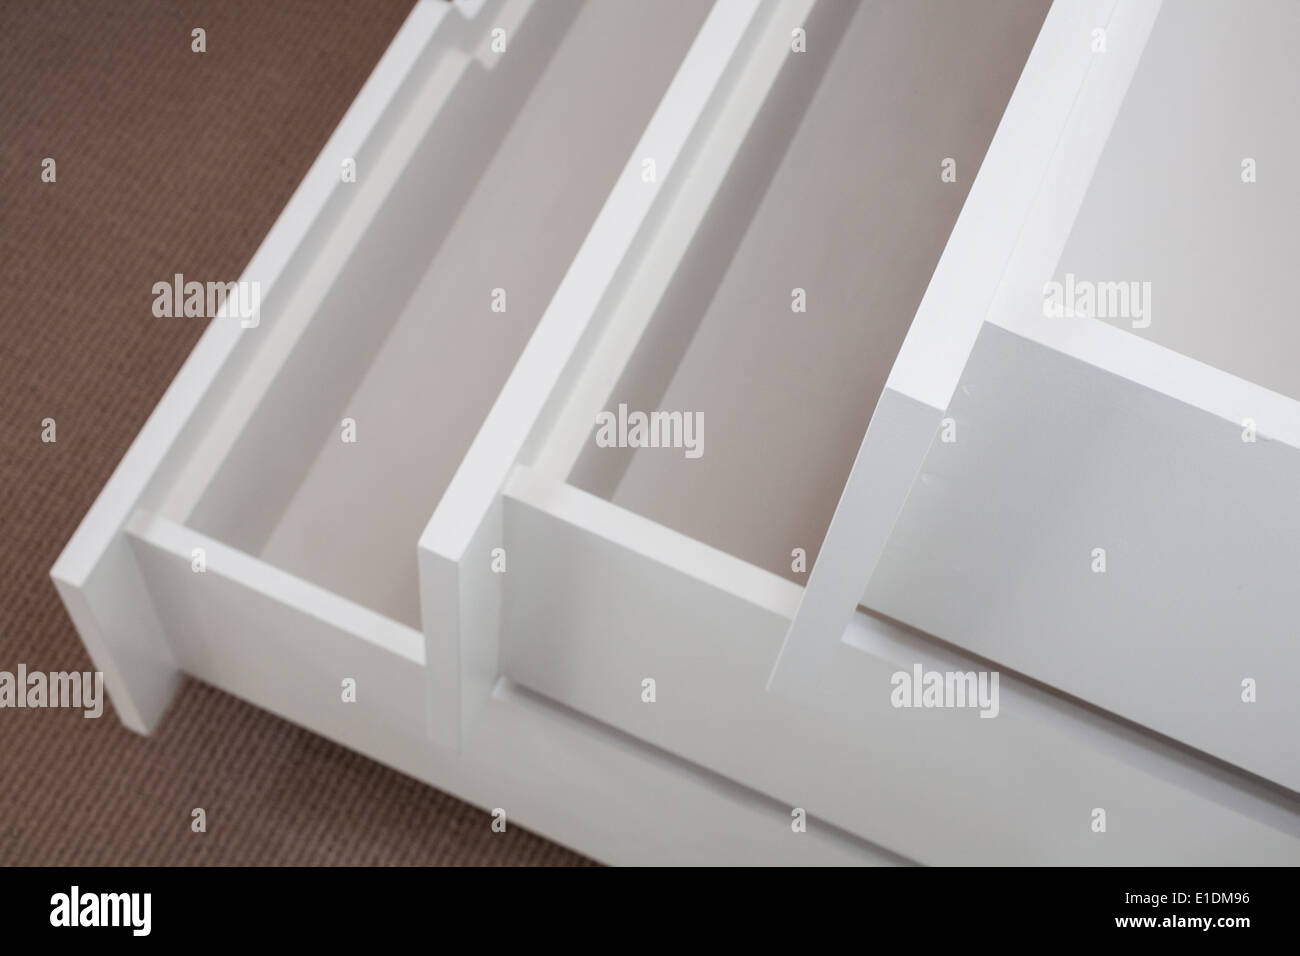 Open white drawers - Stock Image